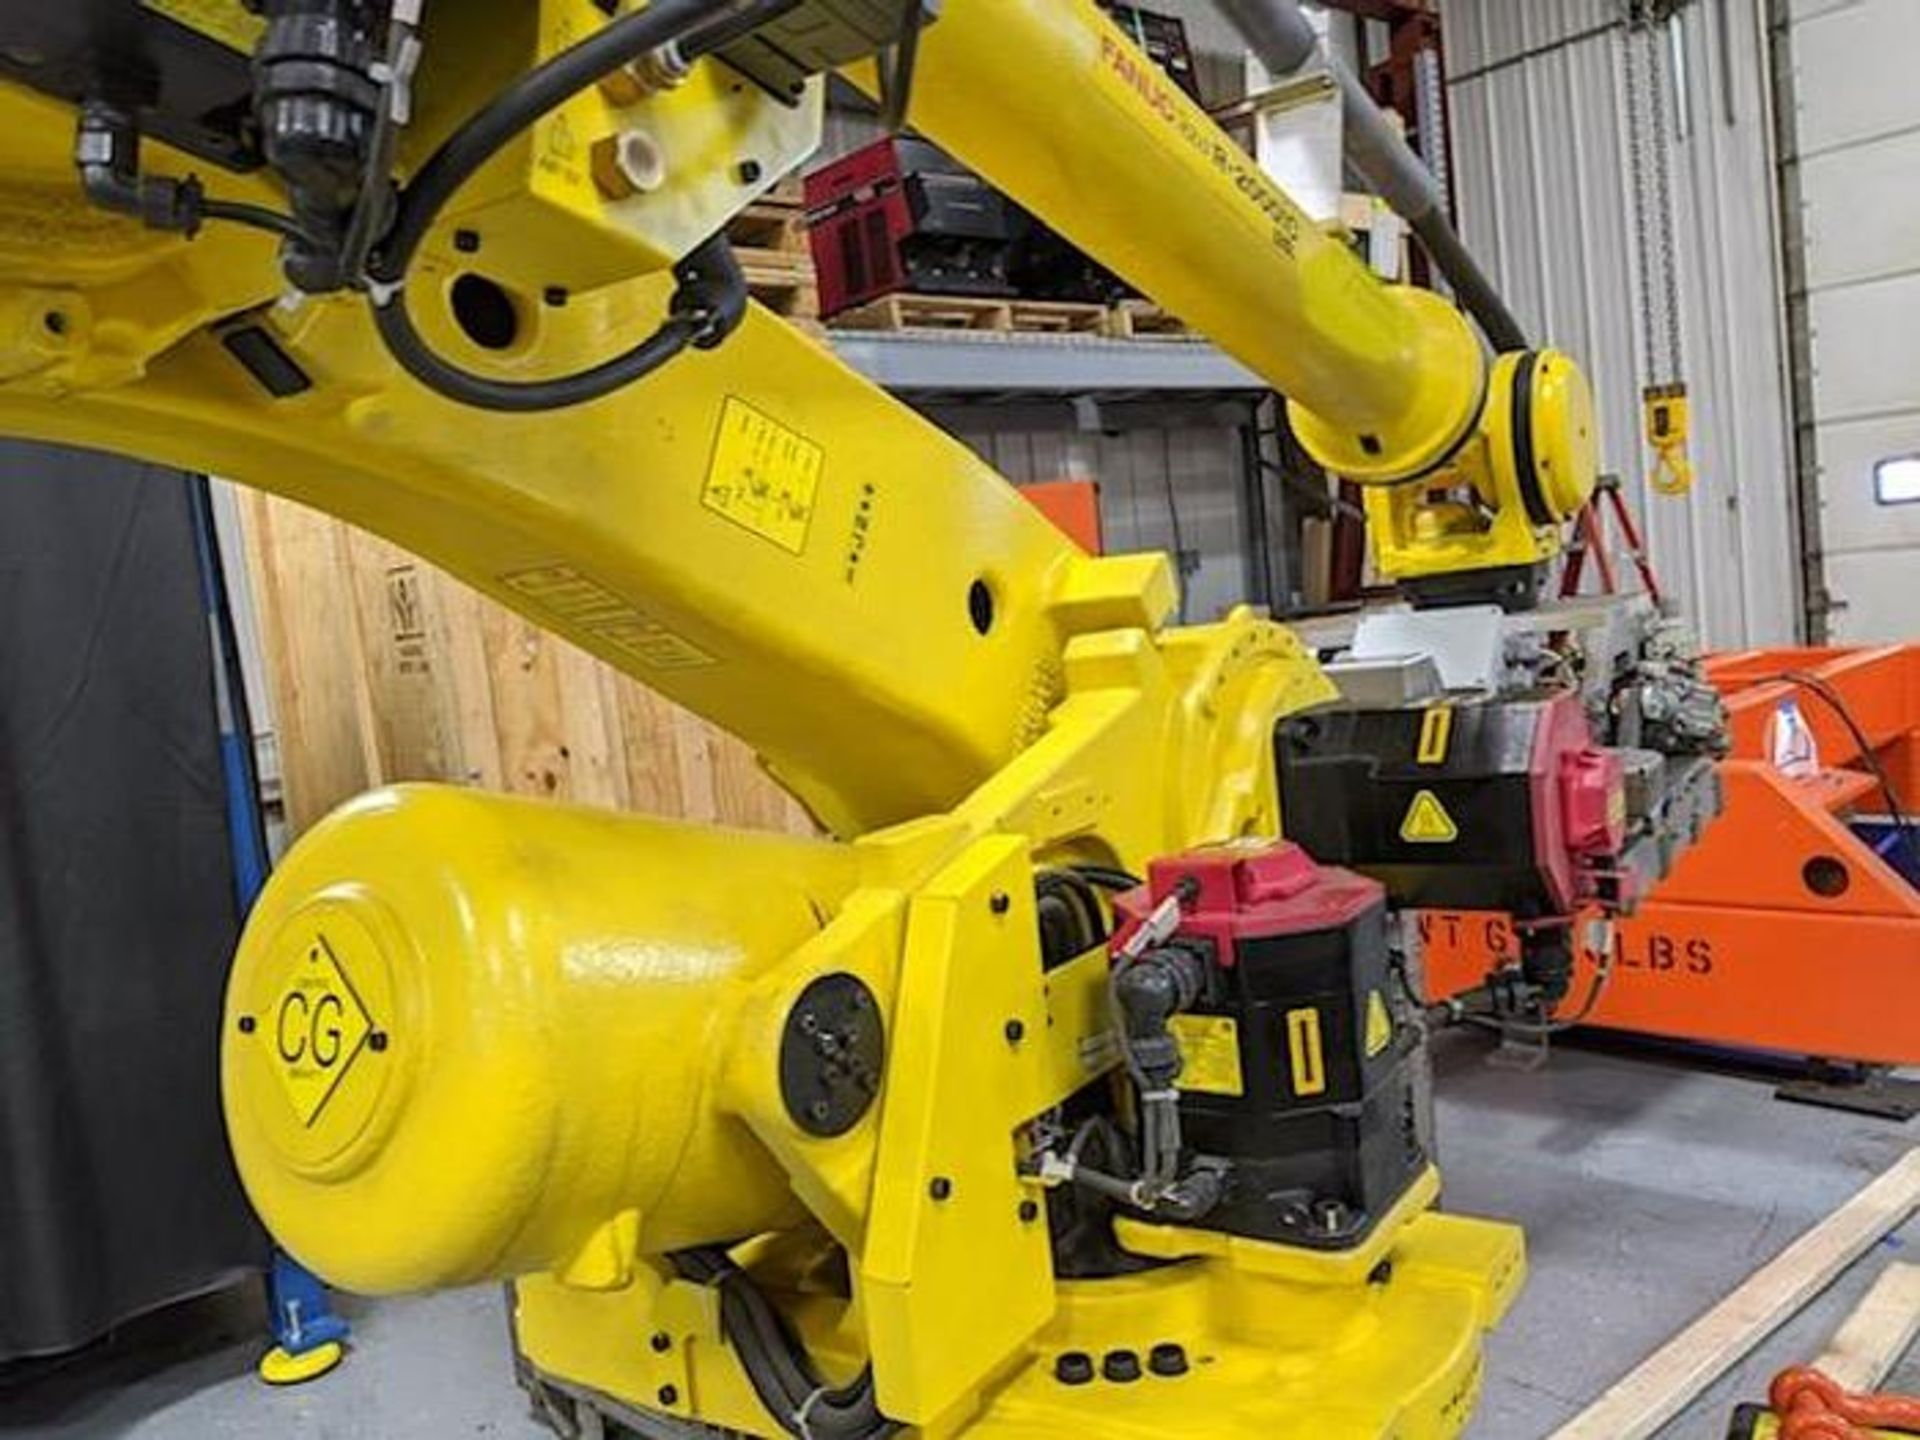 FANUC R2000iC/125L 6 AXIS CNC ROBOT WITH R30iB CONTROLLER, IR VISION, CABLES & REACH - Image 6 of 17